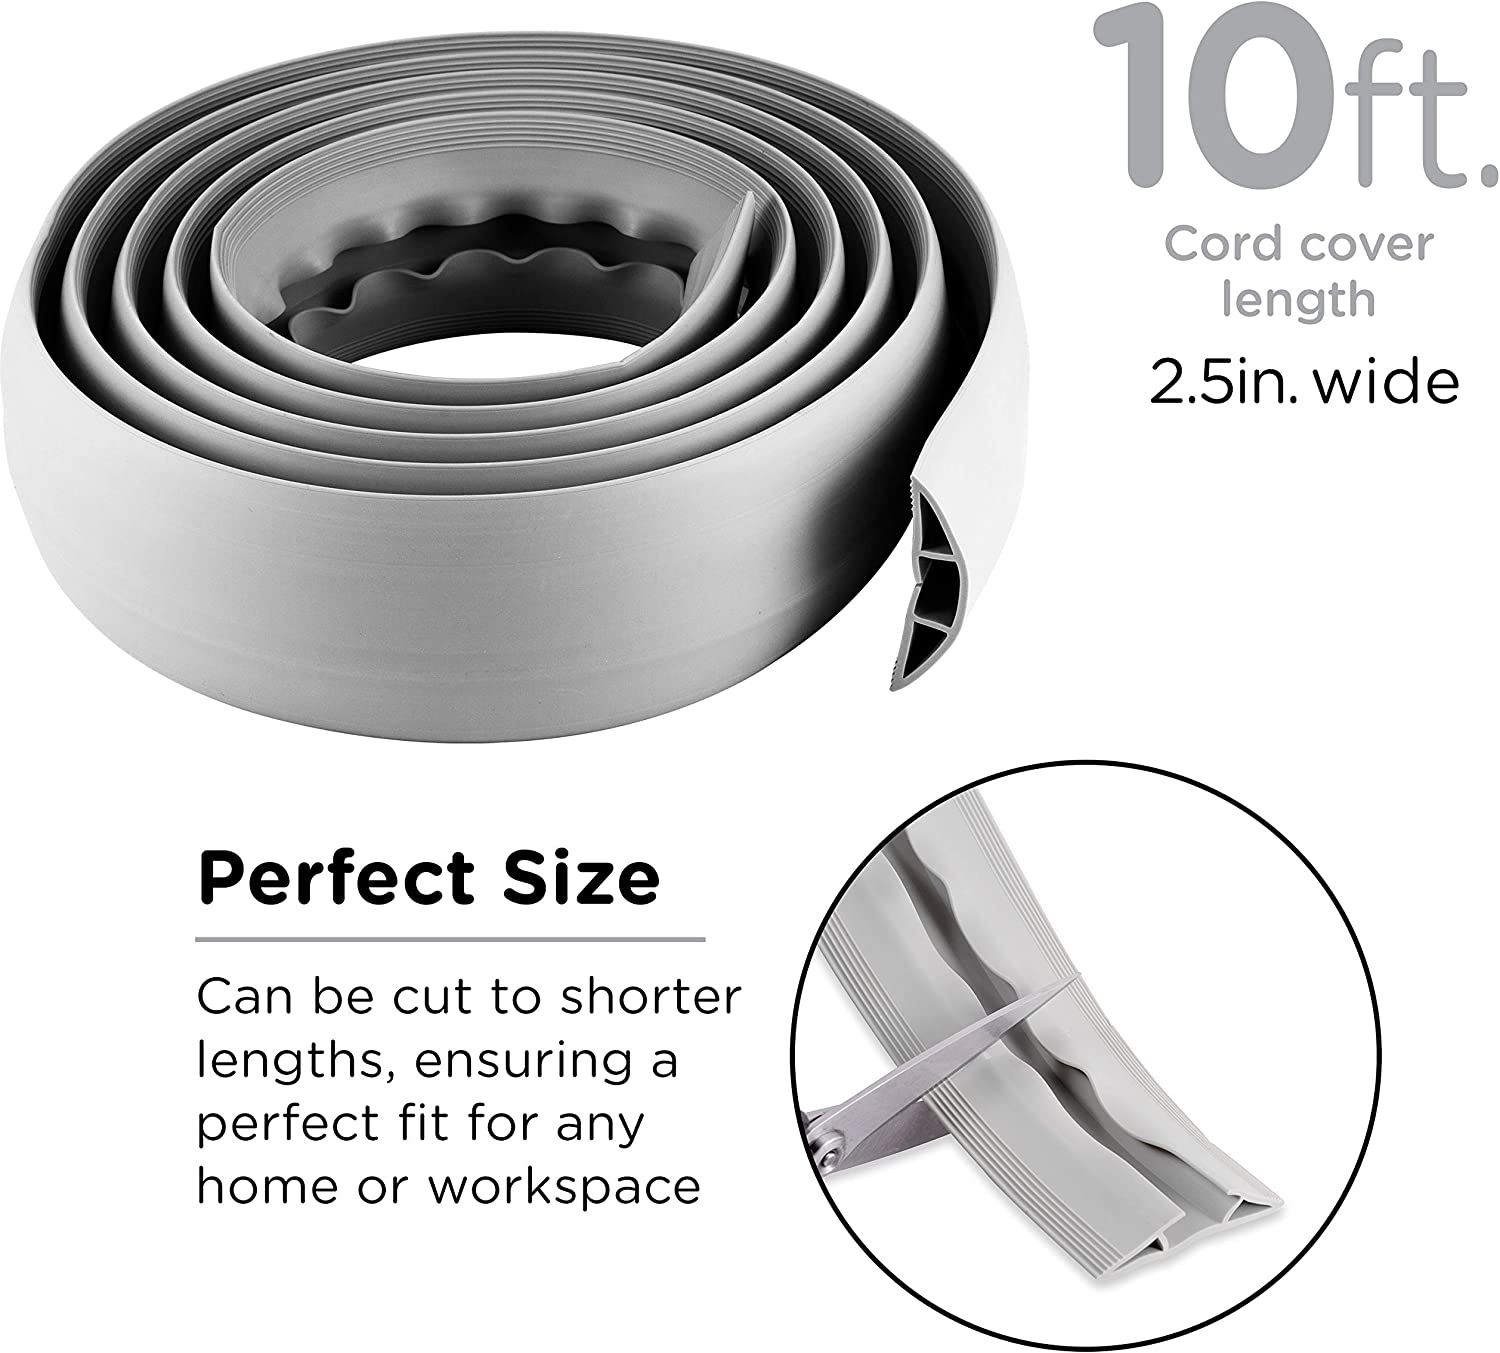 Rubber Low Profile Cordinate 10 Ft Floor Cord Cover Cable Protector Gray 49627